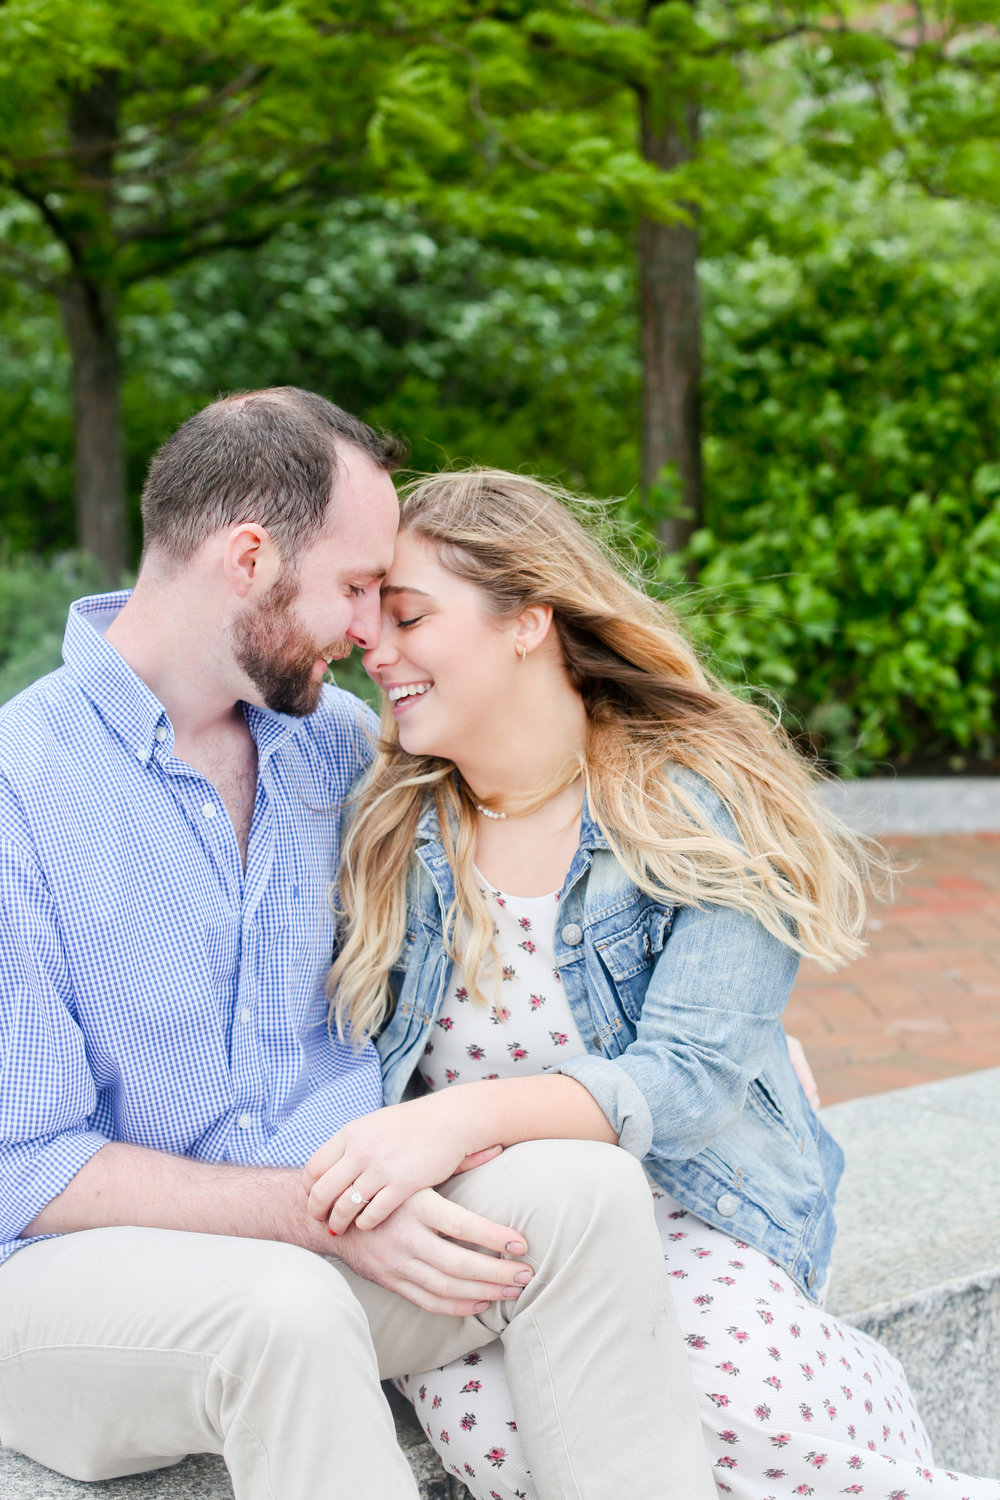 Tiffany & Matt - Engaged -26.jpg